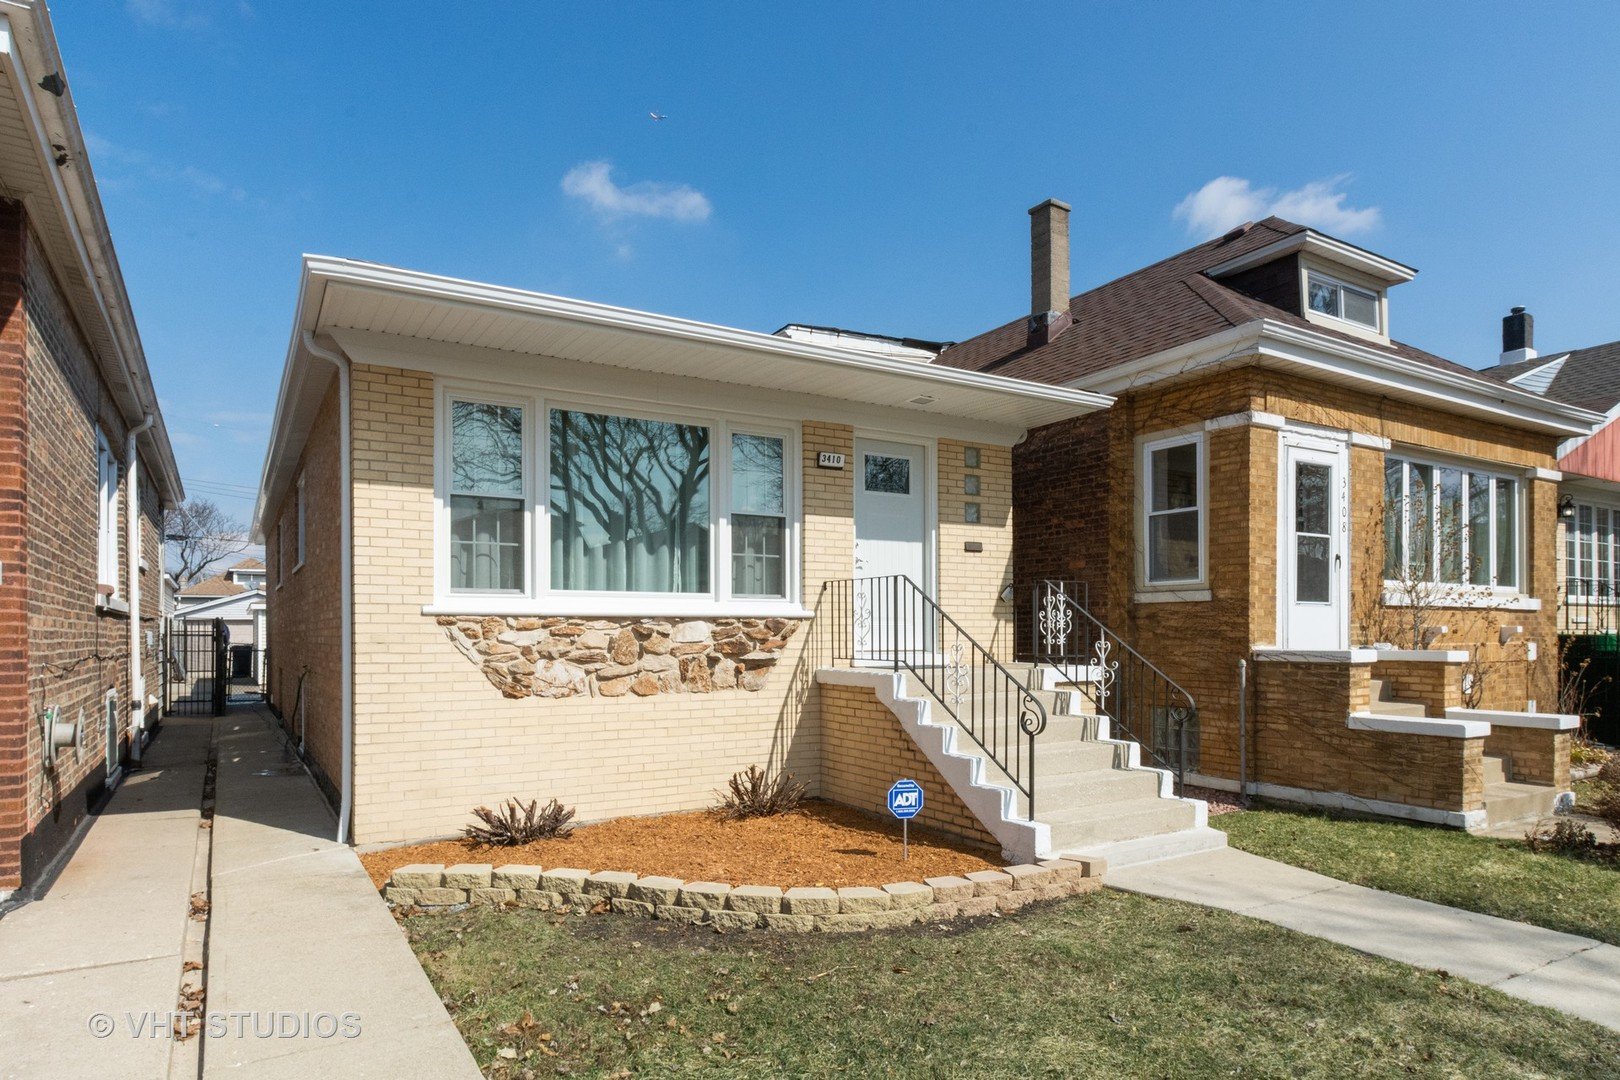 3410 WEST 54TH PLACE, CHICAGO, IL 60632